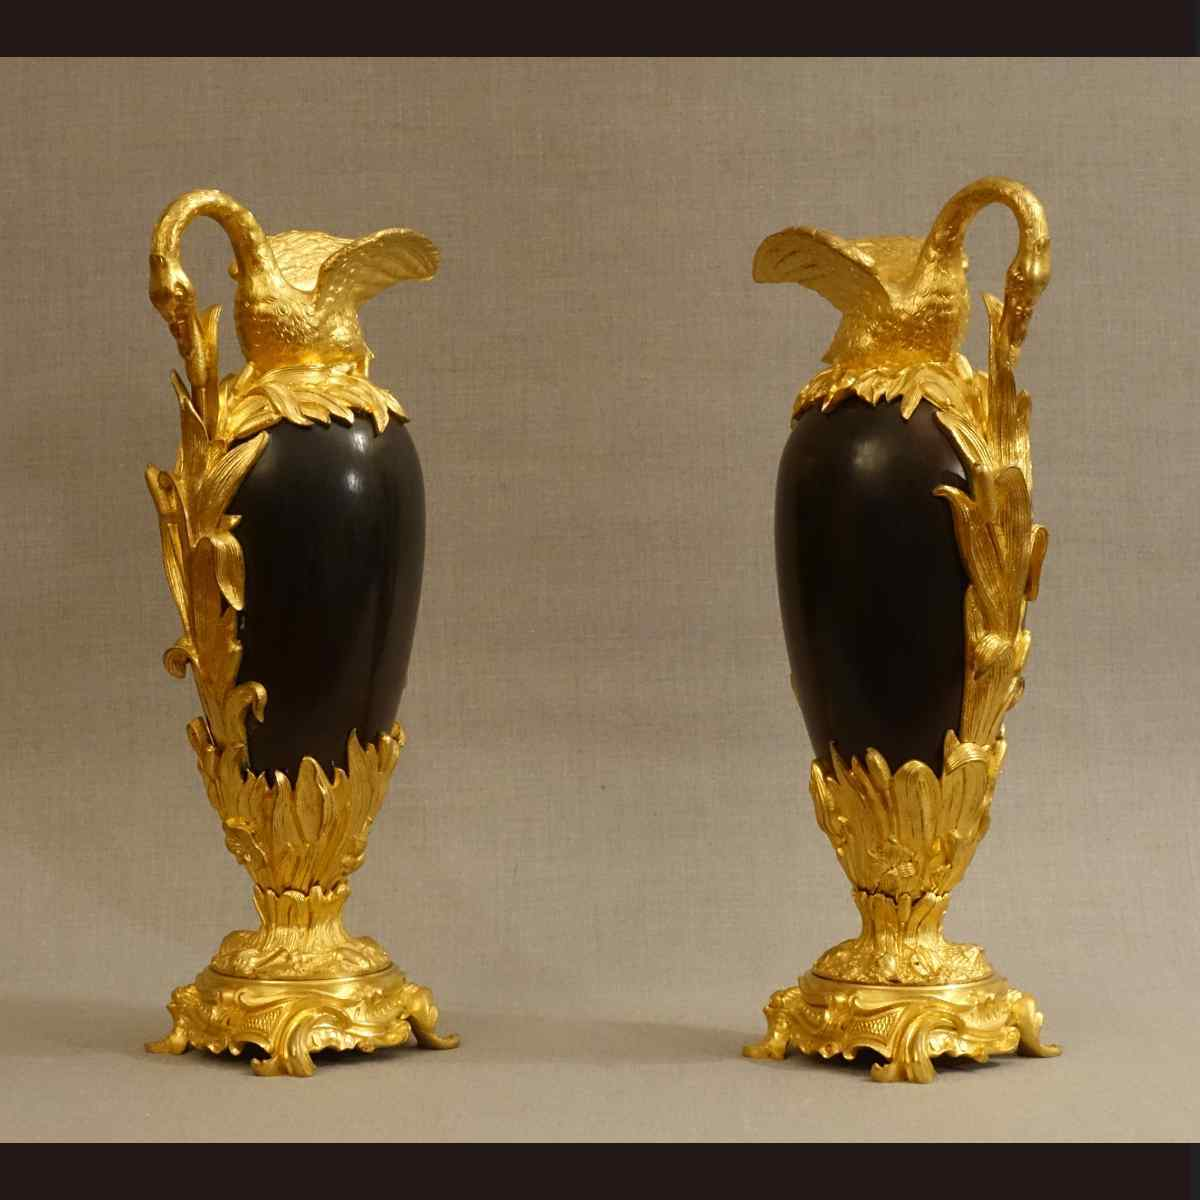 Rare Pair of Louis XVI Style Ewers XIXth